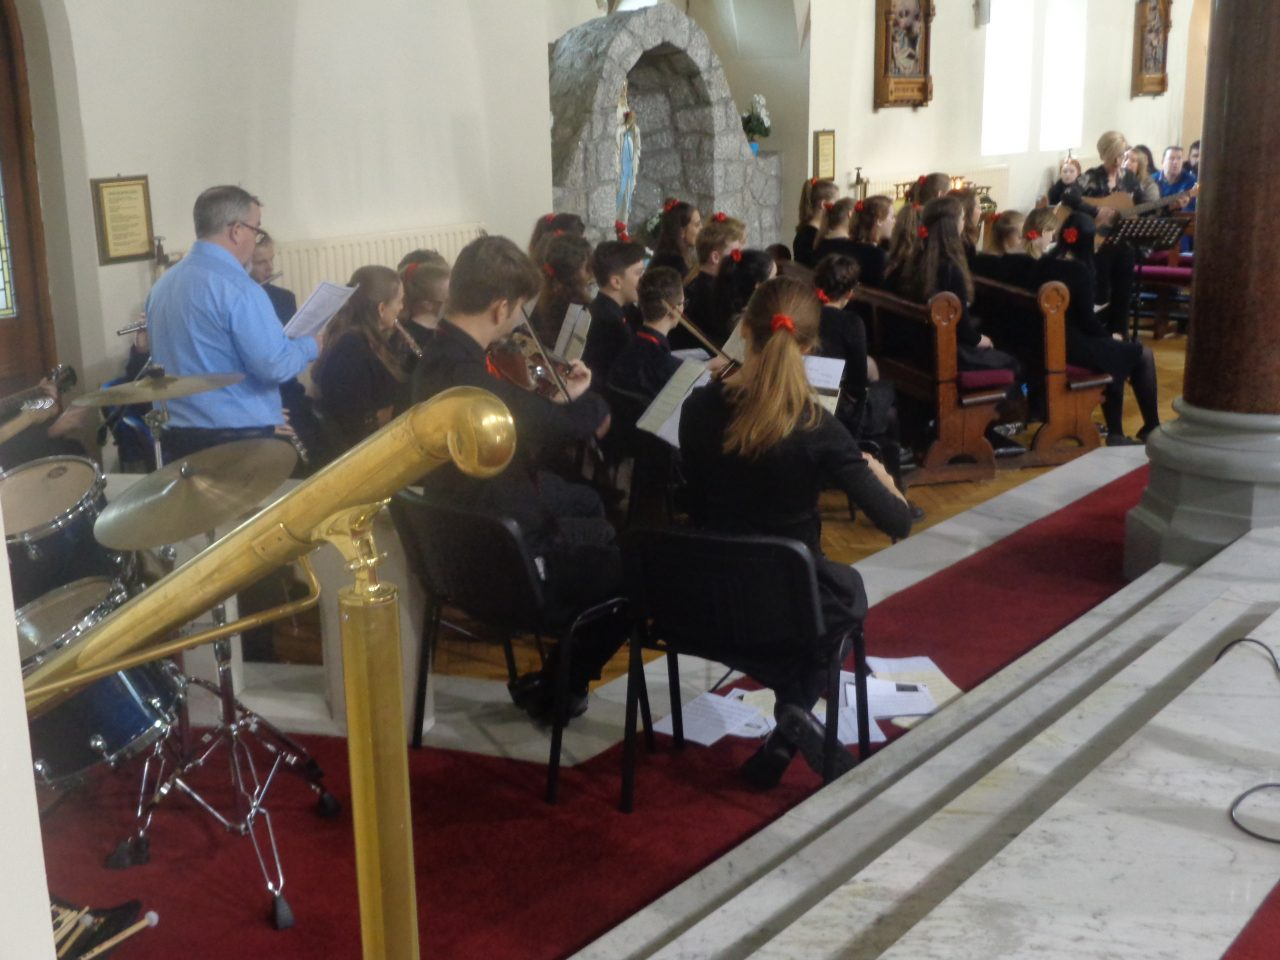 Choir from St Nicholas Catholic High School in Cheshire Playing Their Instruments